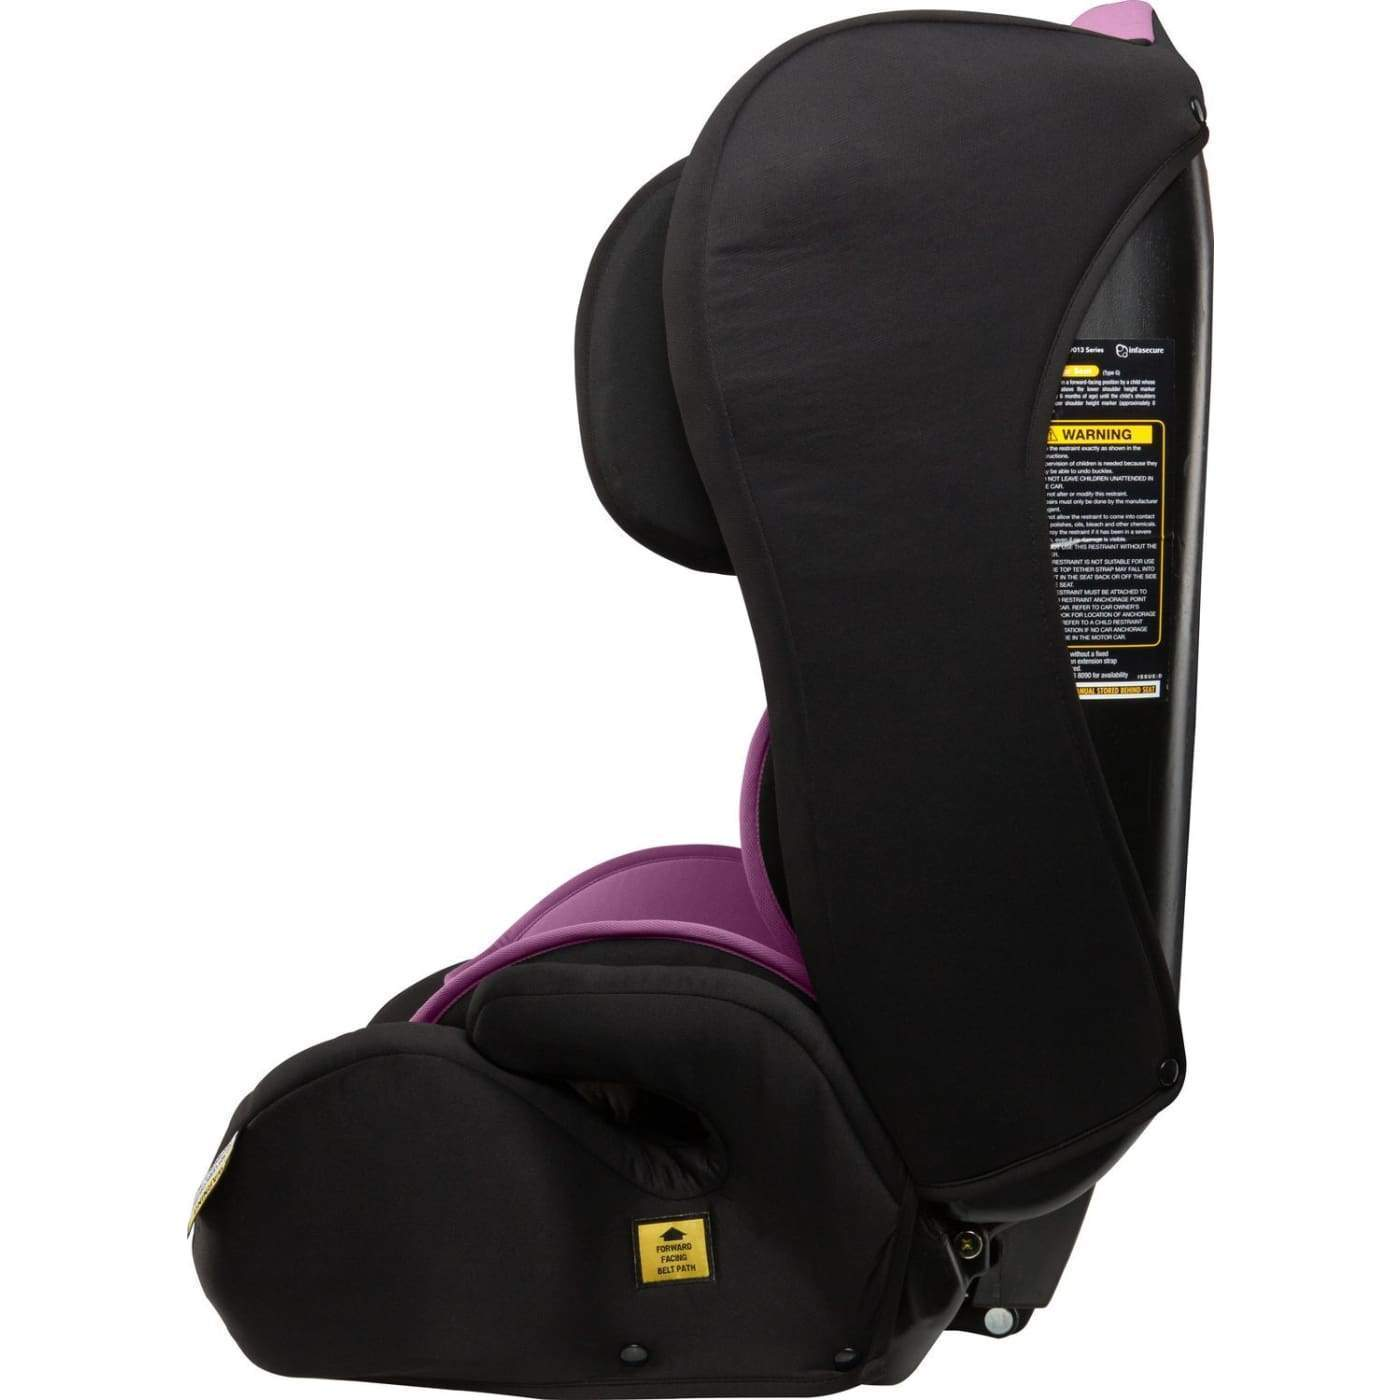 InfaSecure Astra Emerge Harnessed Booster 6M-8YR - Purple - CAR SEATS - HARNESSED BOOSTERS (6M-8YR)